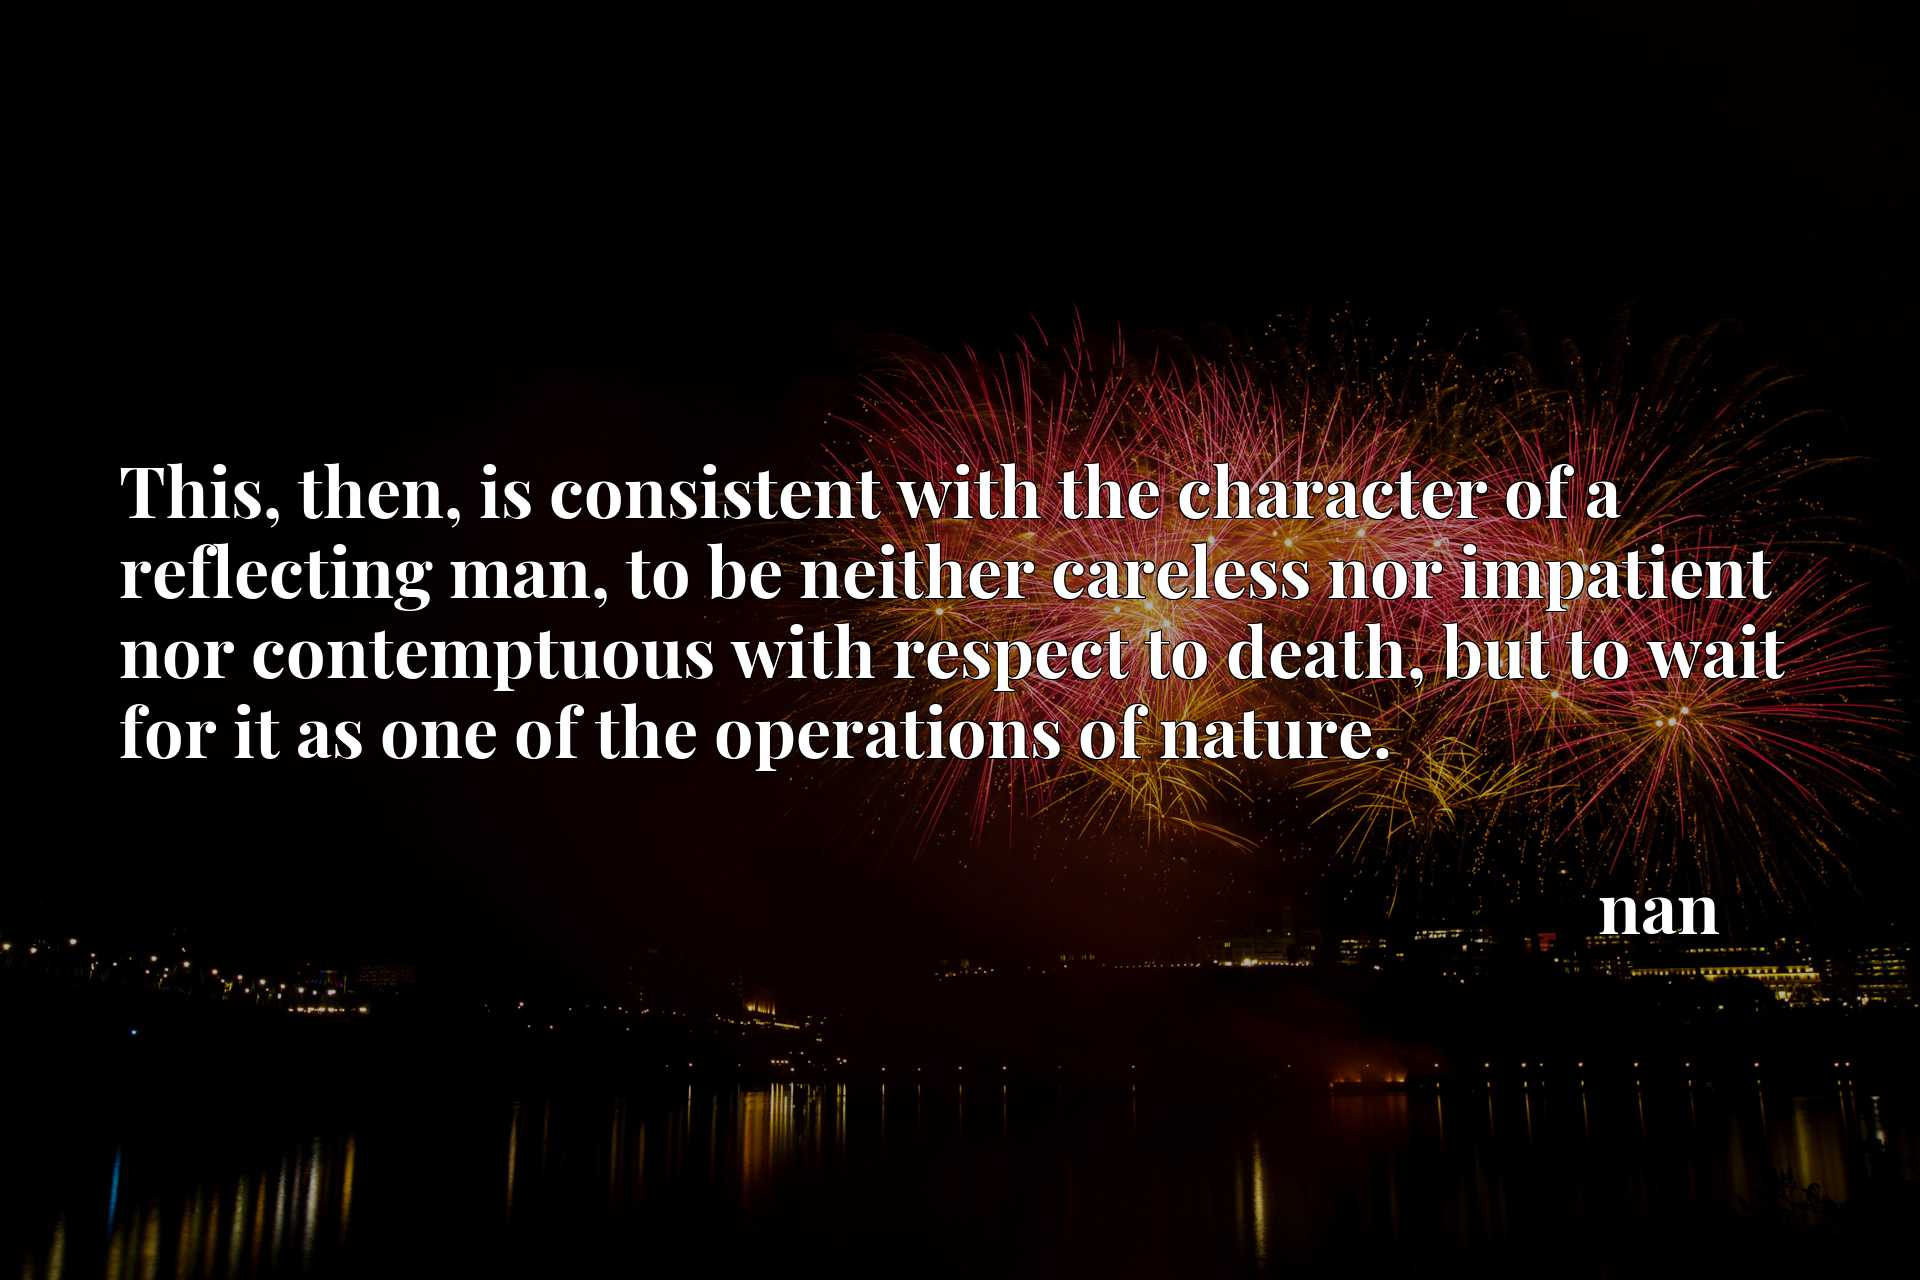 This, then, is consistent with the character of a reflecting man, to be neither careless nor impatient nor contemptuous with respect to death, but to wait for it as one of the operations of nature.